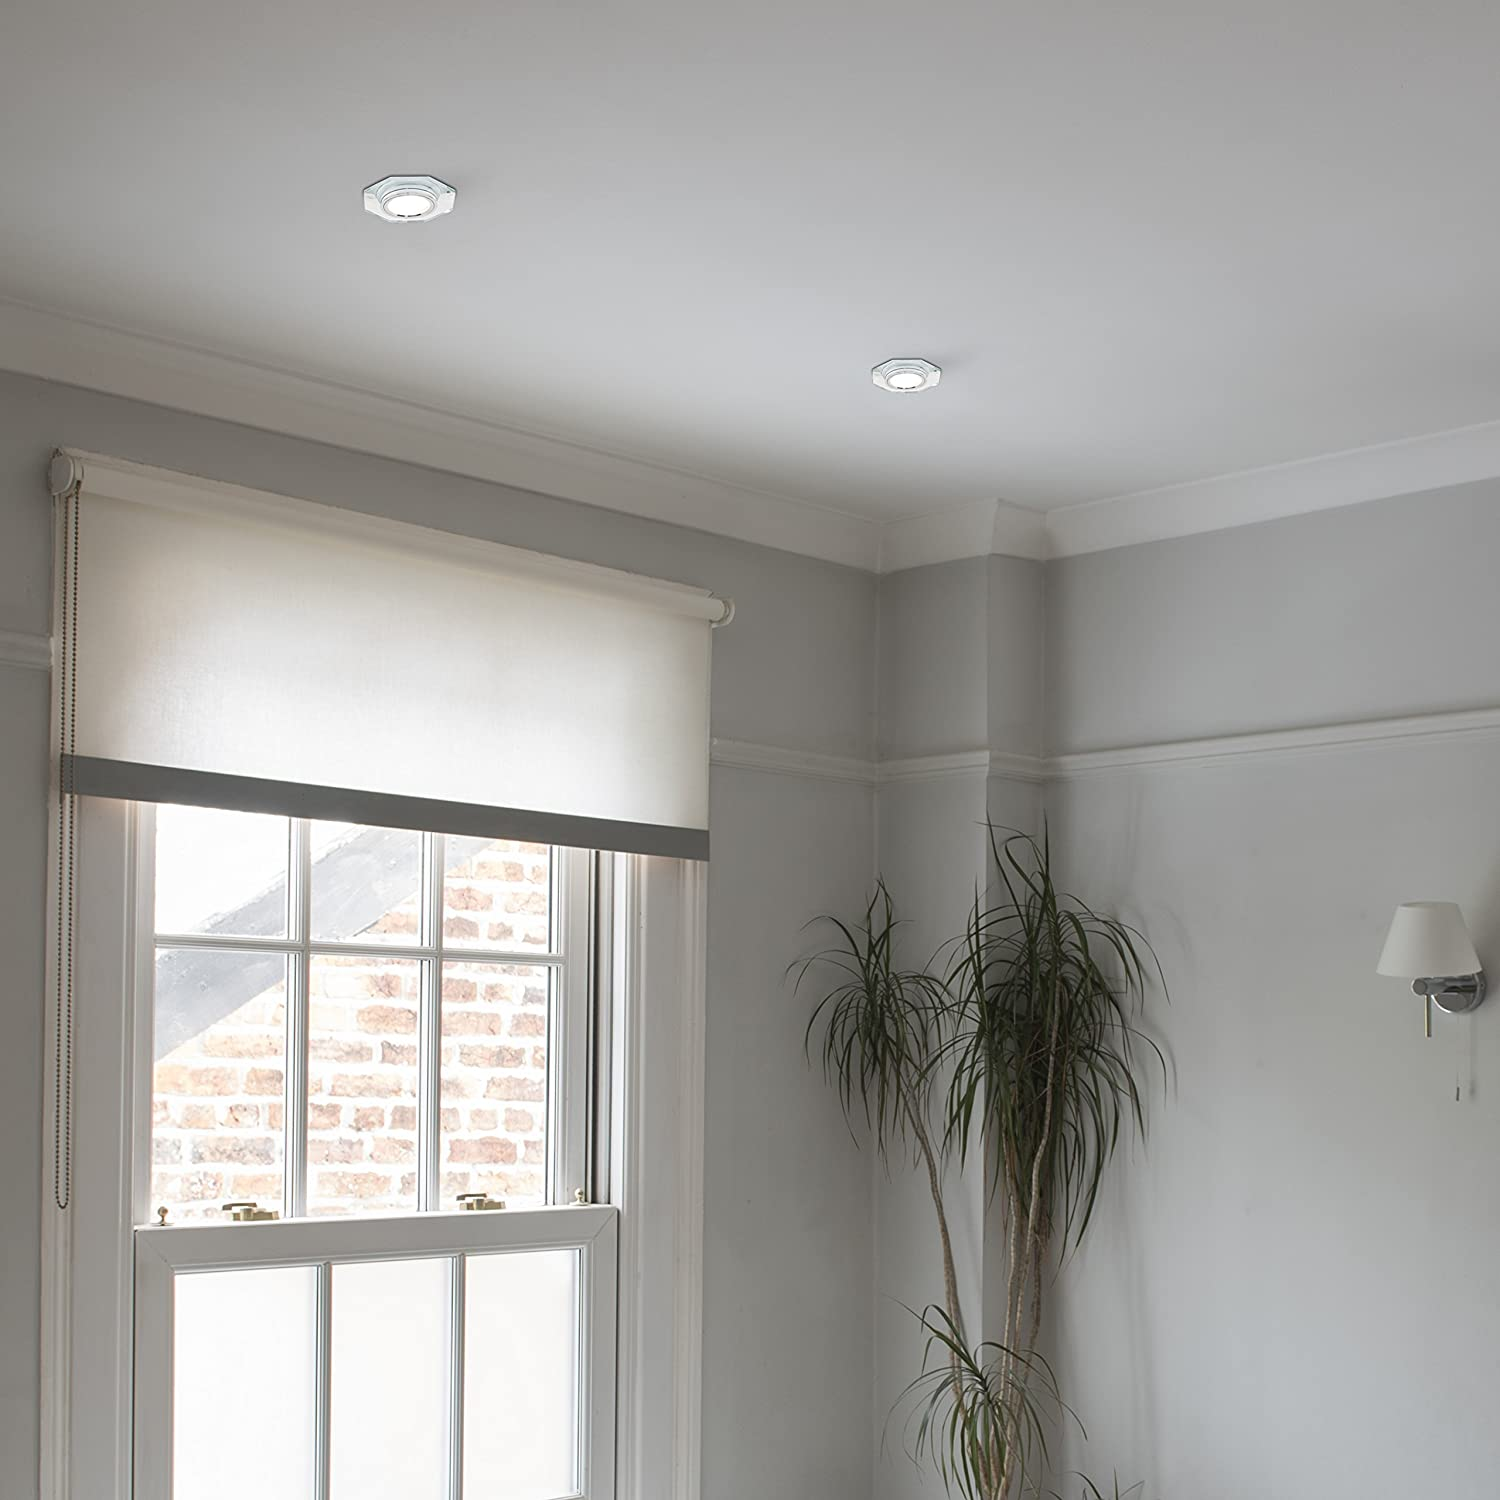 MiniSun Fire Rated Clear Glass and Chrome GU10 Contemporary Hexagonal Recessed Ceiling Downlight